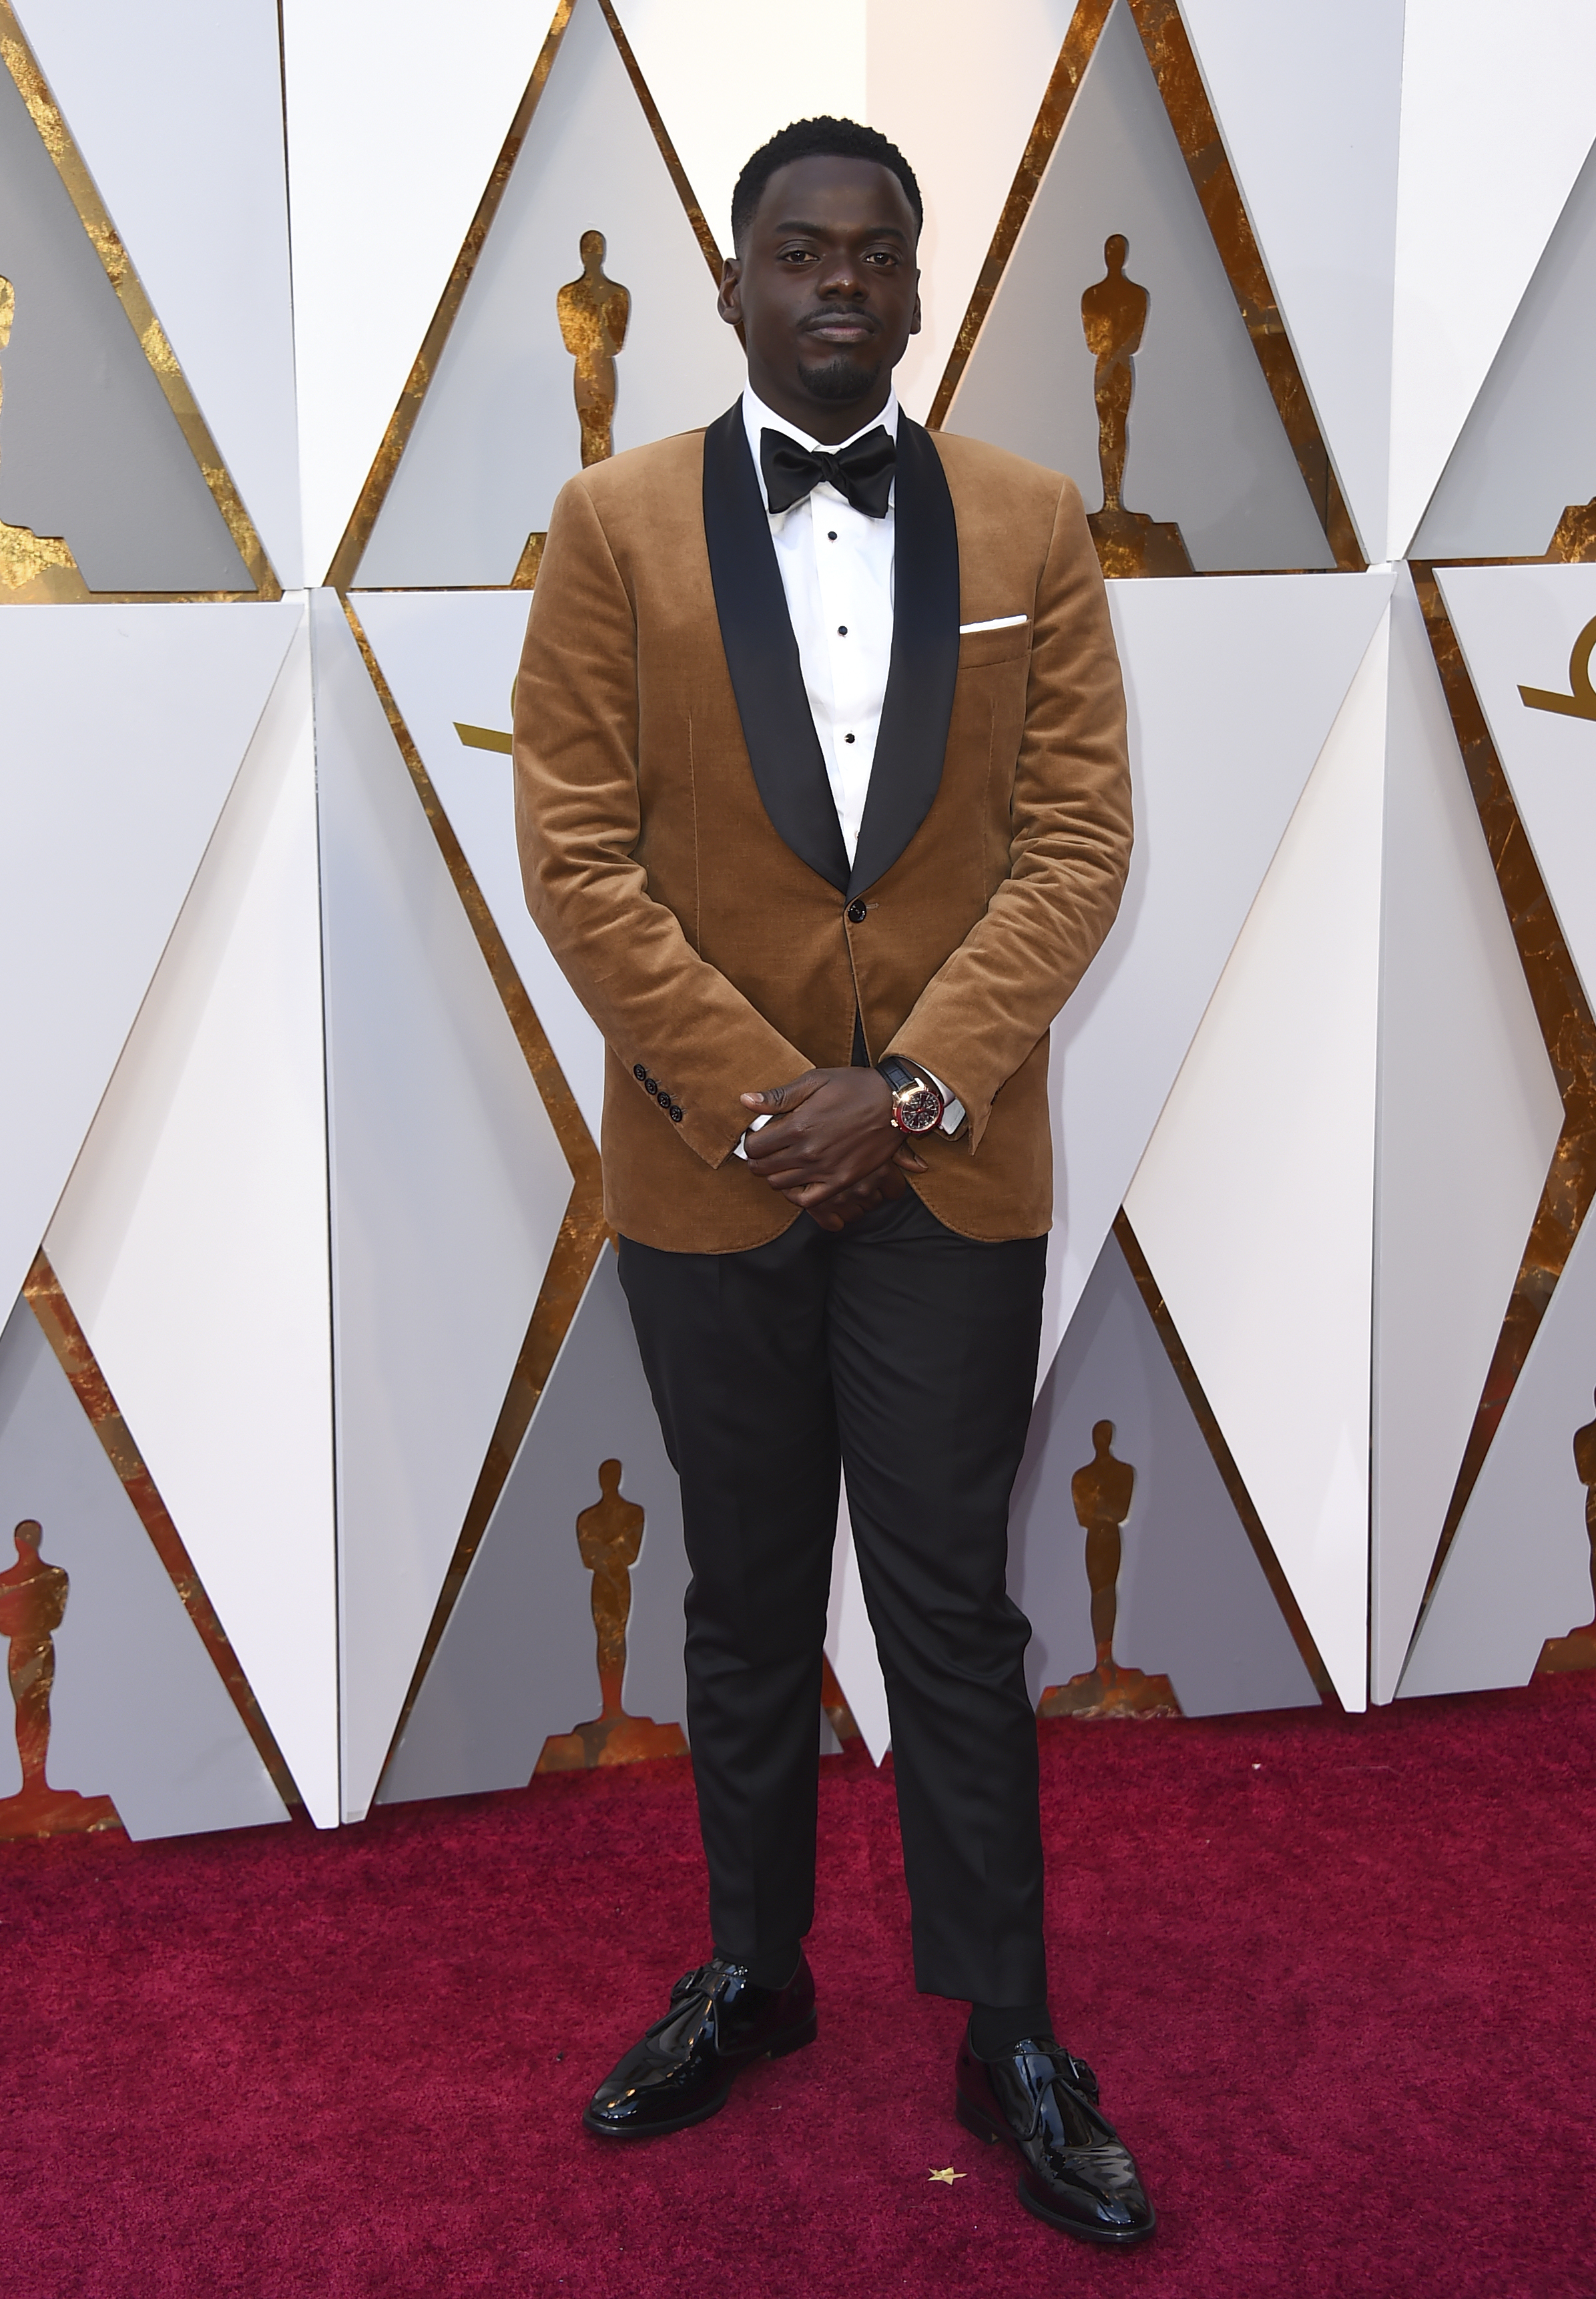 "<div class=""meta image-caption""><div class=""origin-logo origin-image none""><span>none</span></div><span class=""caption-text"">Daniel Kaluuya, nominated for Best Actor for ''Get Out,'' arrives at the Oscars on Sunday, March 4, 2018, at the Dolby Theatre in Los Angeles. (Jordan Strauss/Invision/AP)</span></div>"